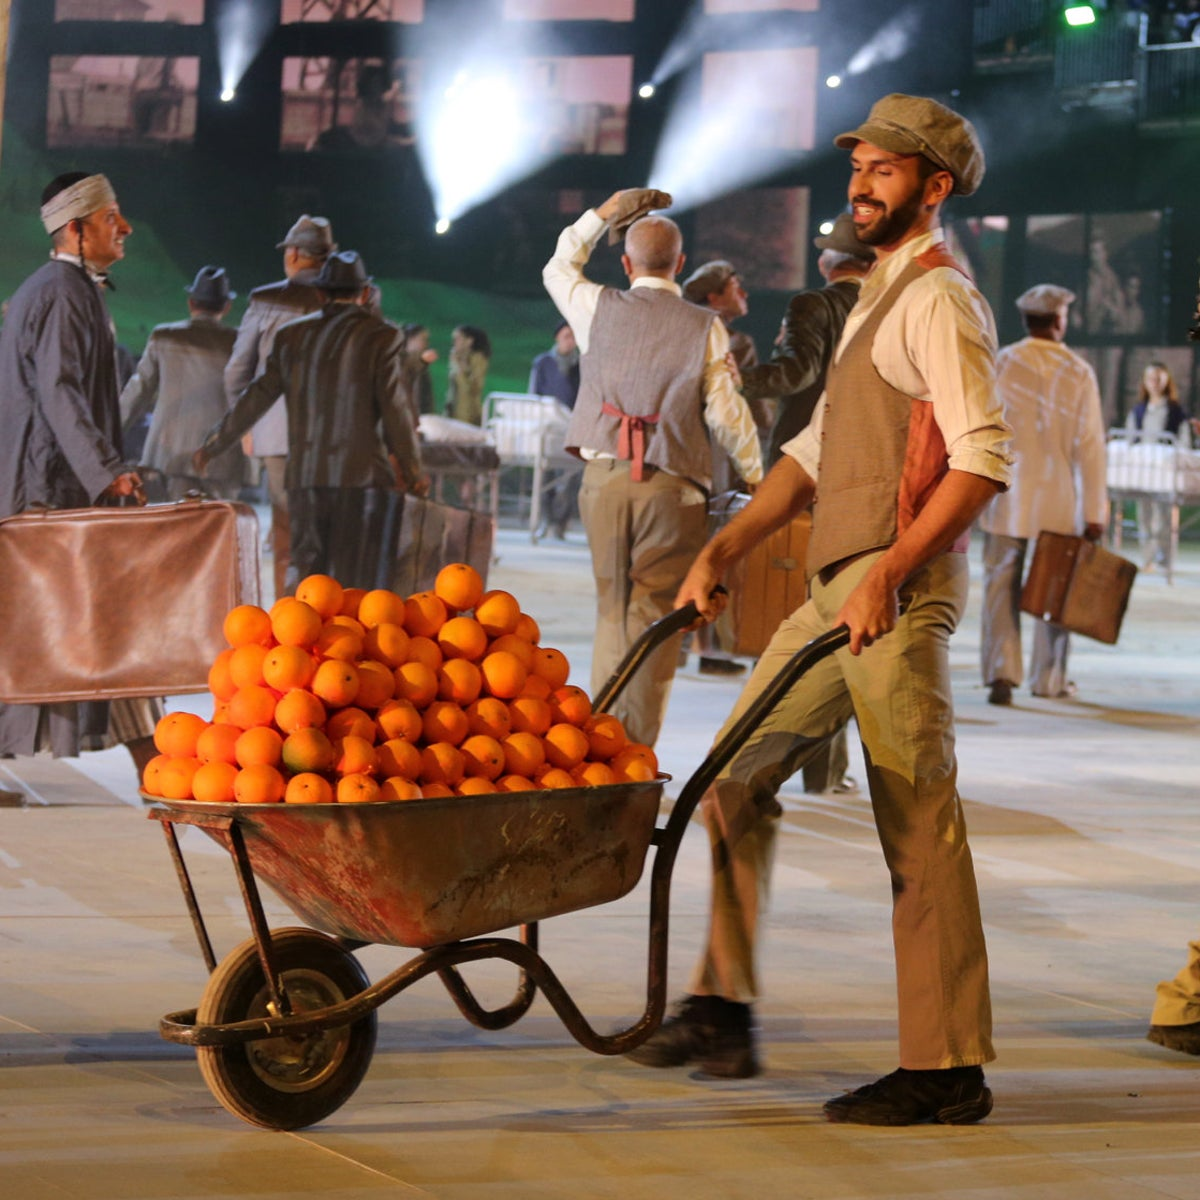 Actors playing Jewish members of the HeHalutz movement carrying oranges, as part of the national ceremony for the 70th anniversary of Israel.